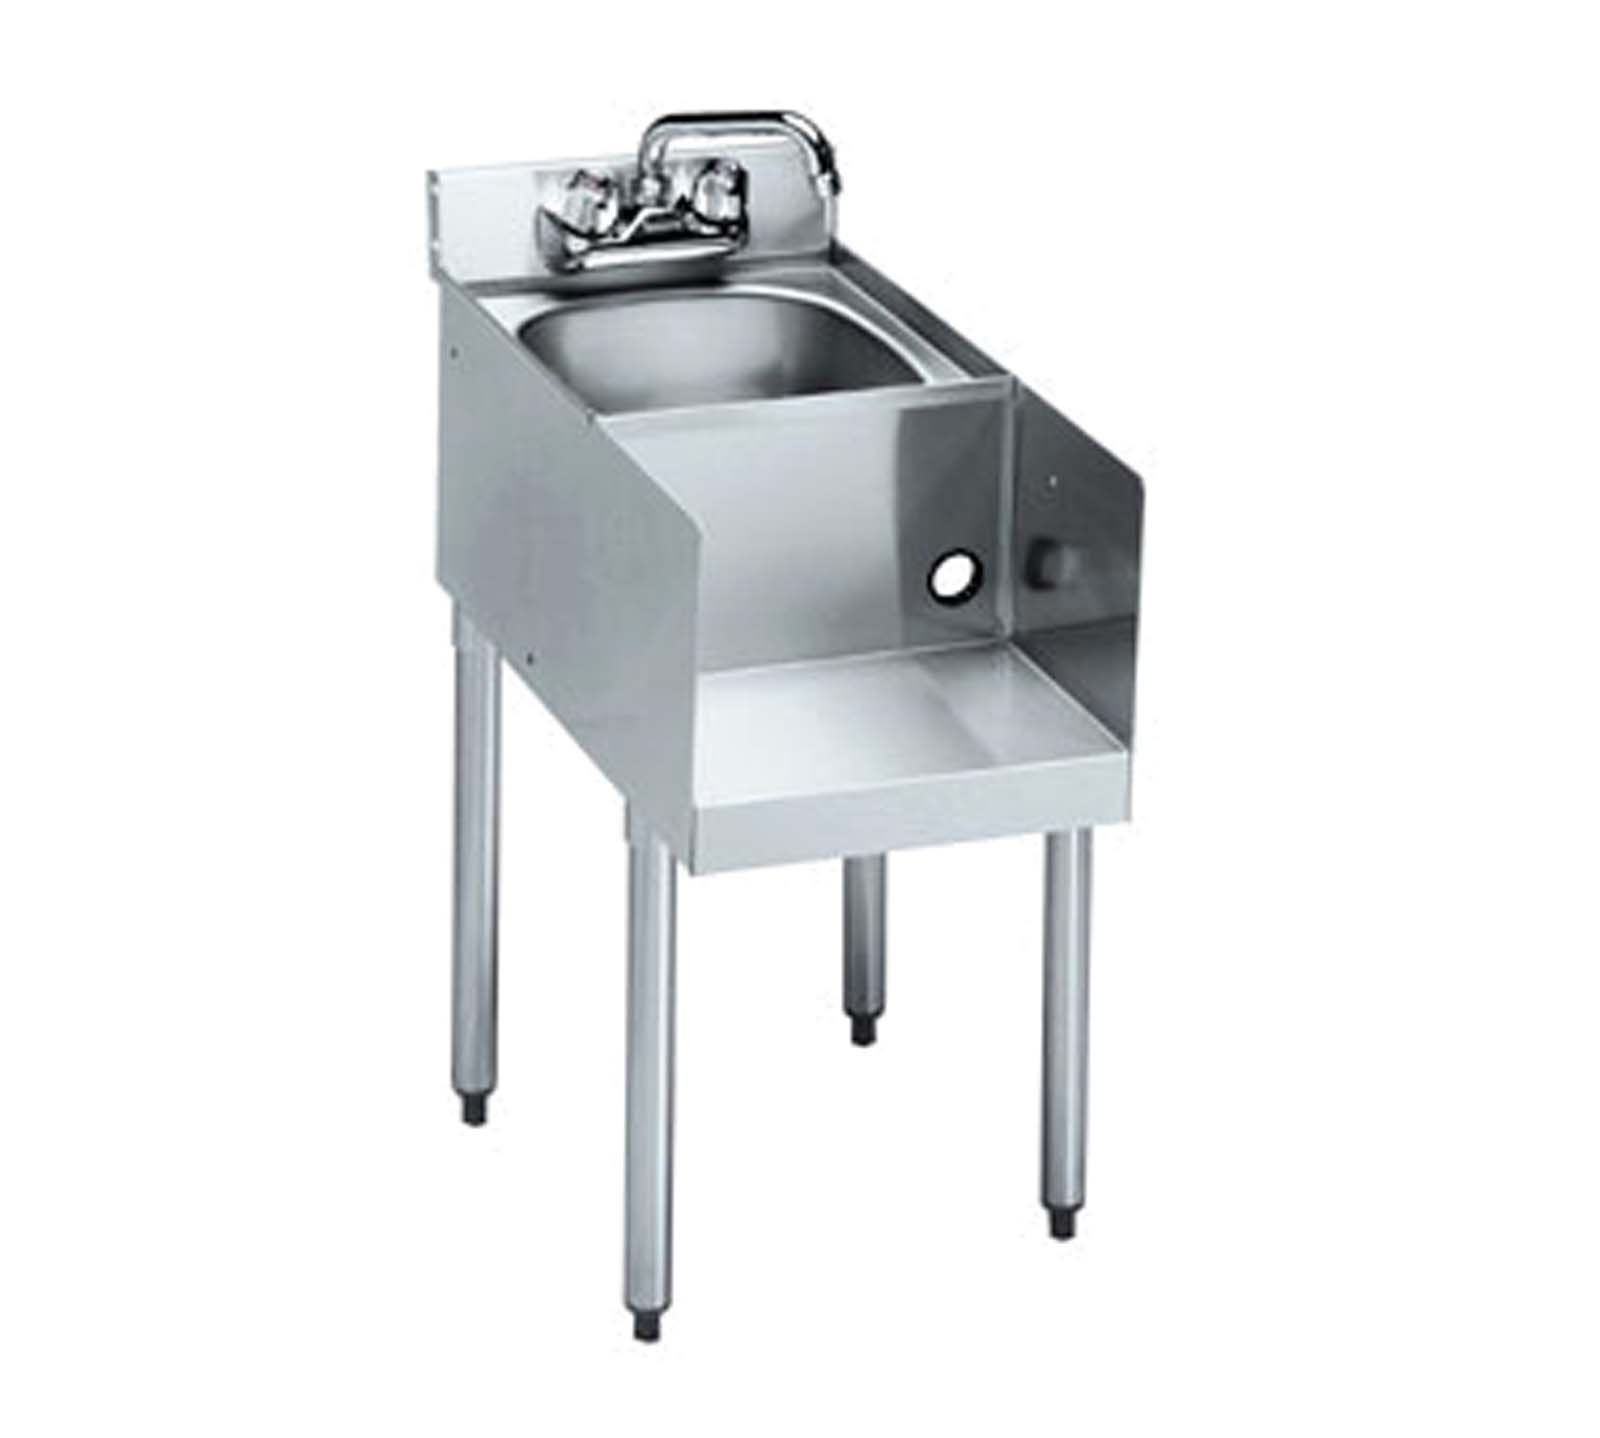 Krowne 18-18BD - 1800 Series 18'' Blender/ Dump Sink Modular Add-On